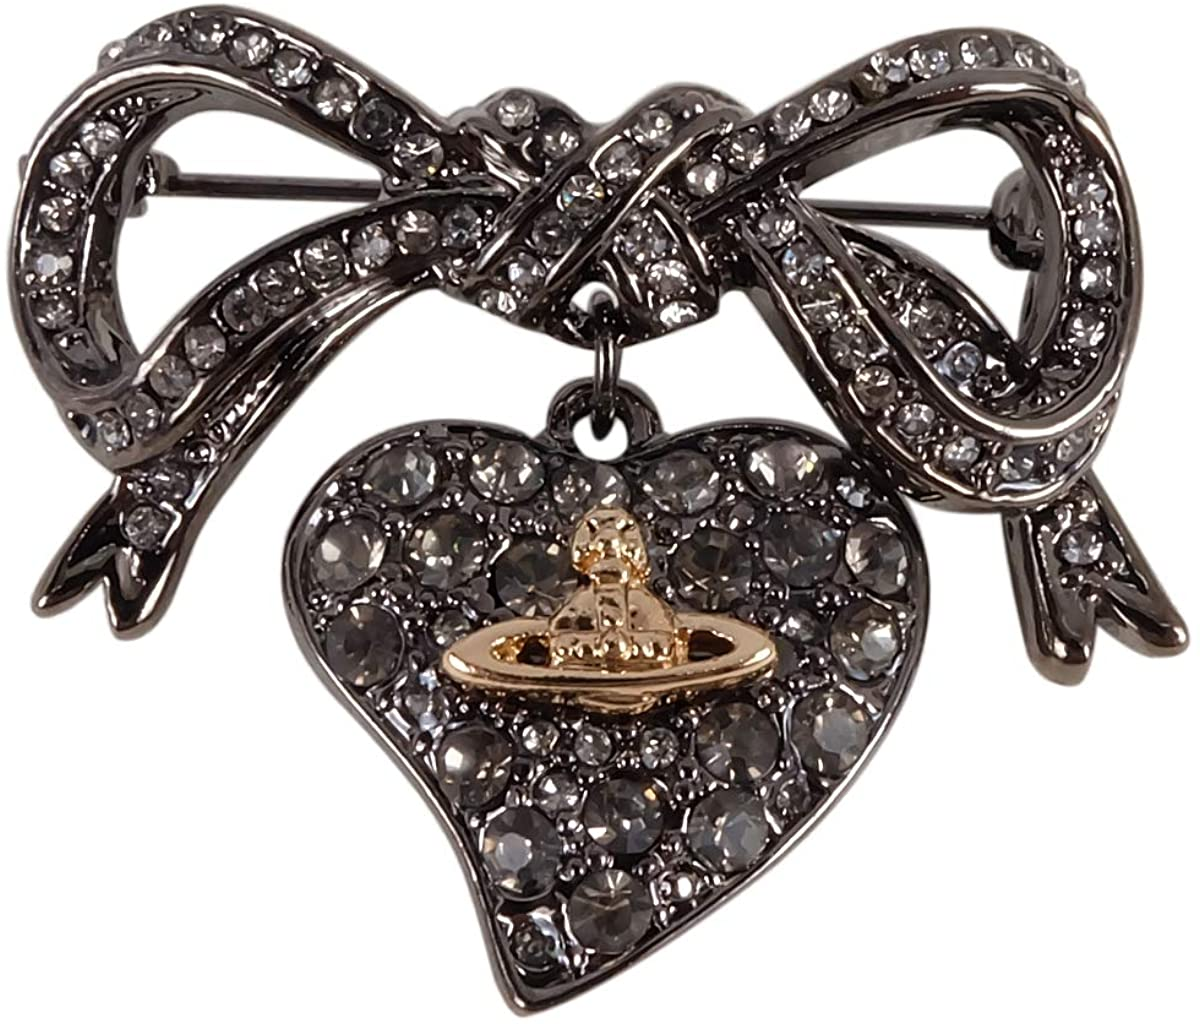 Vivienne Westwood Titanium Black Bow Brooch with Exclusive Box and Paper Bag